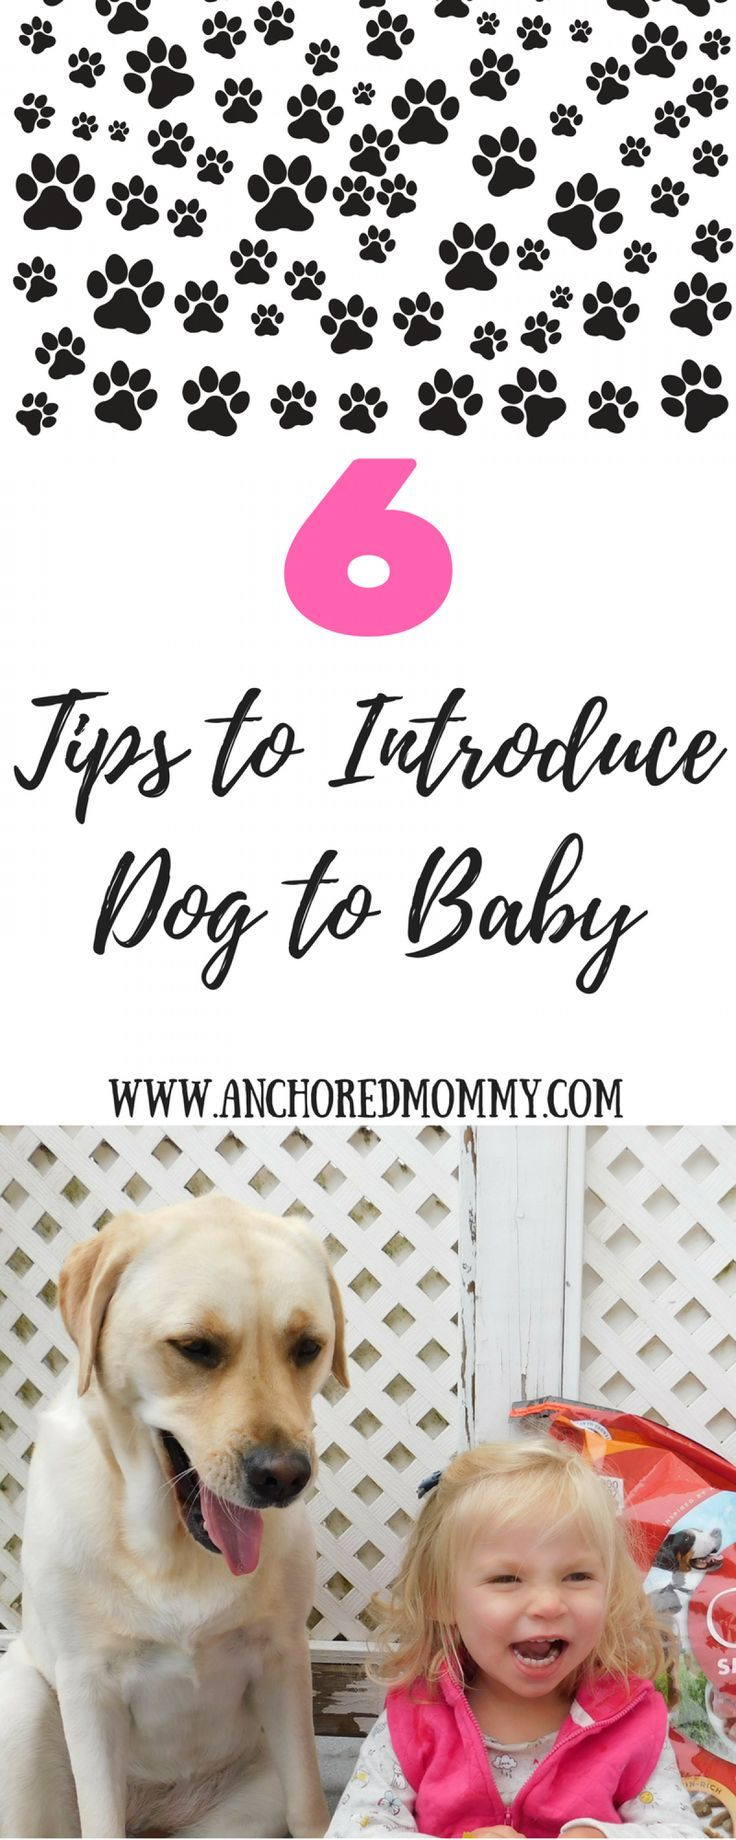 Tips to Introducing Dog to Baby + *IMPORTANT* Gerber Baby